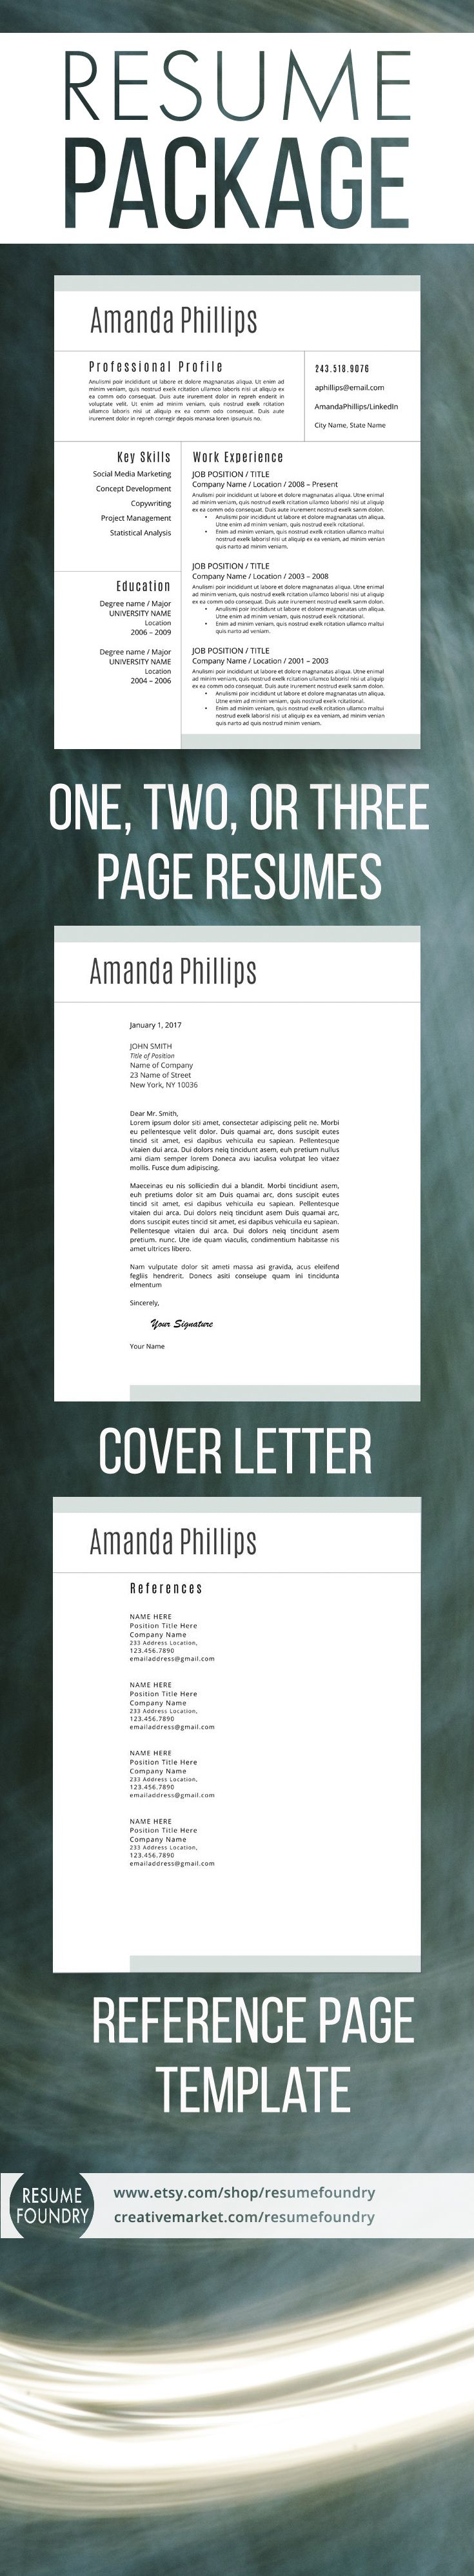 How To Start A Resume Letter Modern Resume Template For Word 13 Page Resume  Cover Letter  .